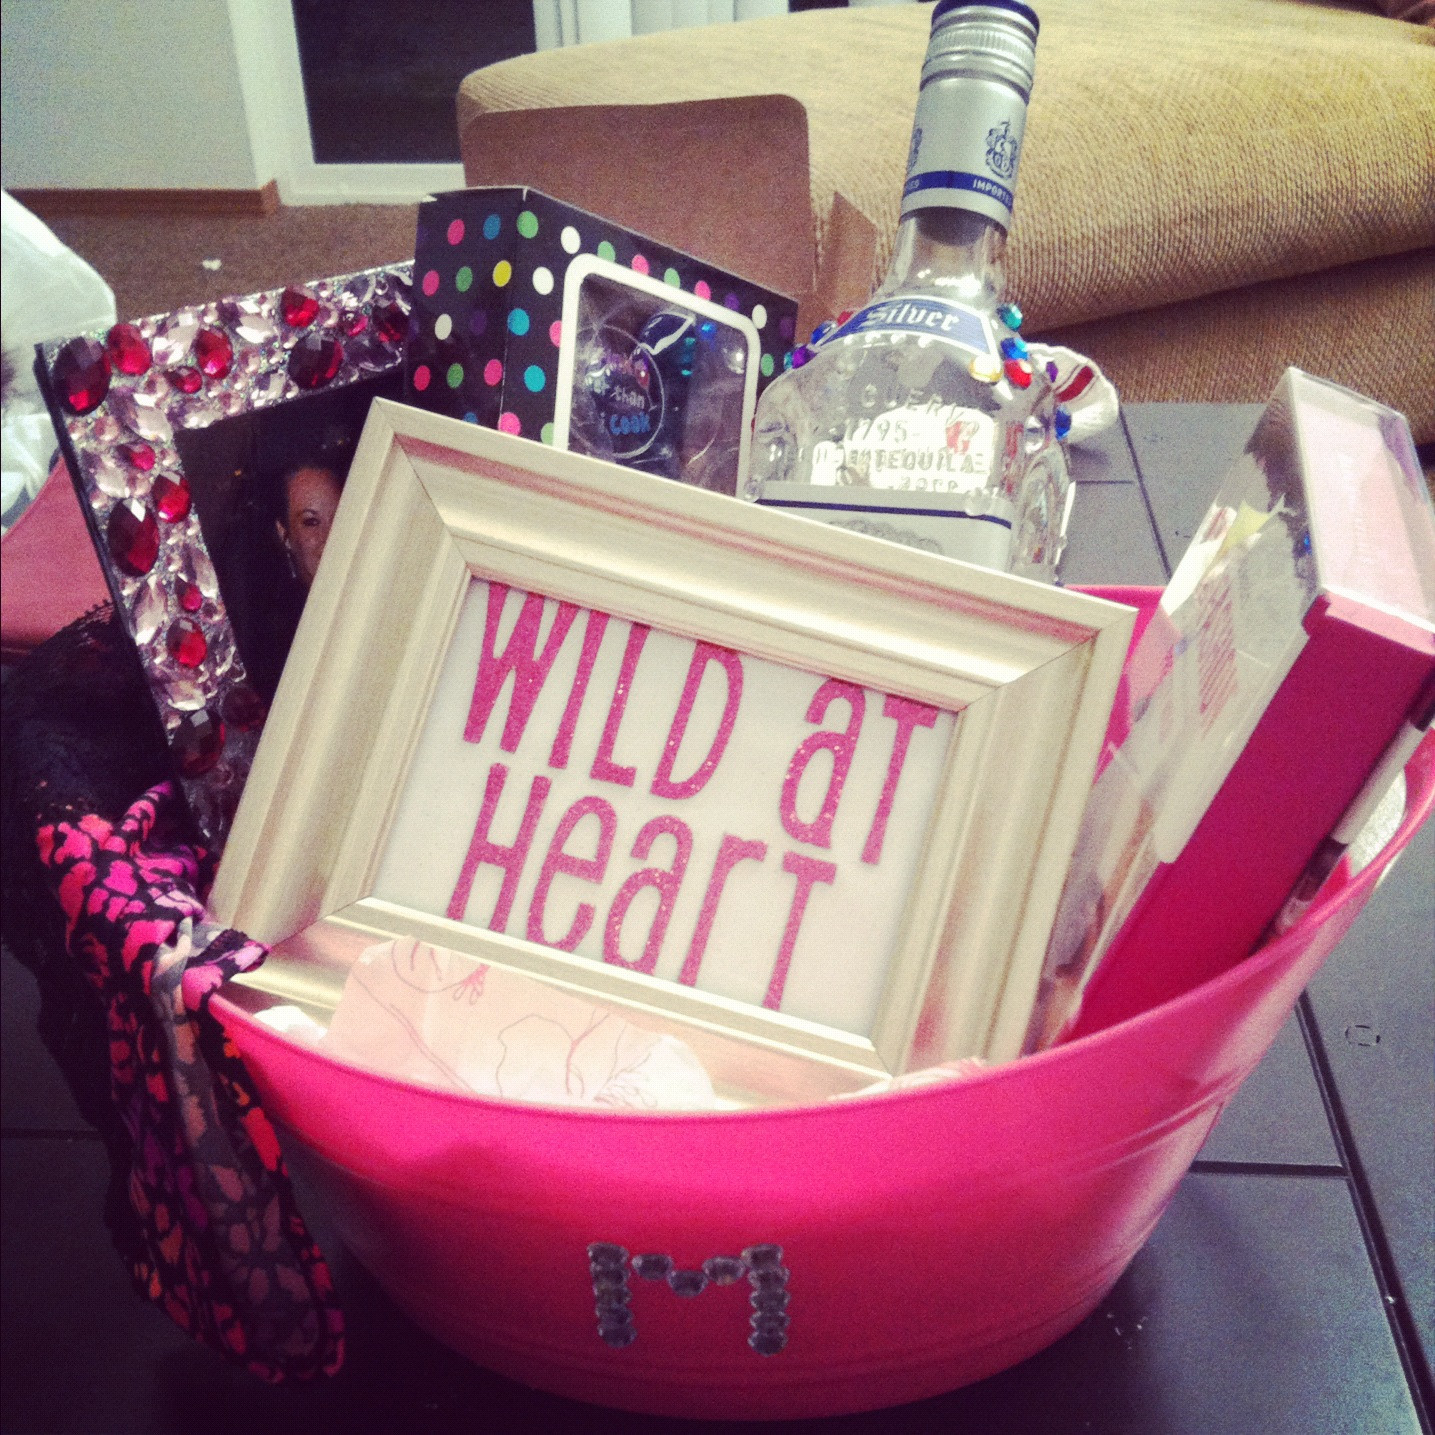 Best ideas about DIY Gift Baskets For Her . Save or Pin DIY Wild at Heart Gift Basket Now.